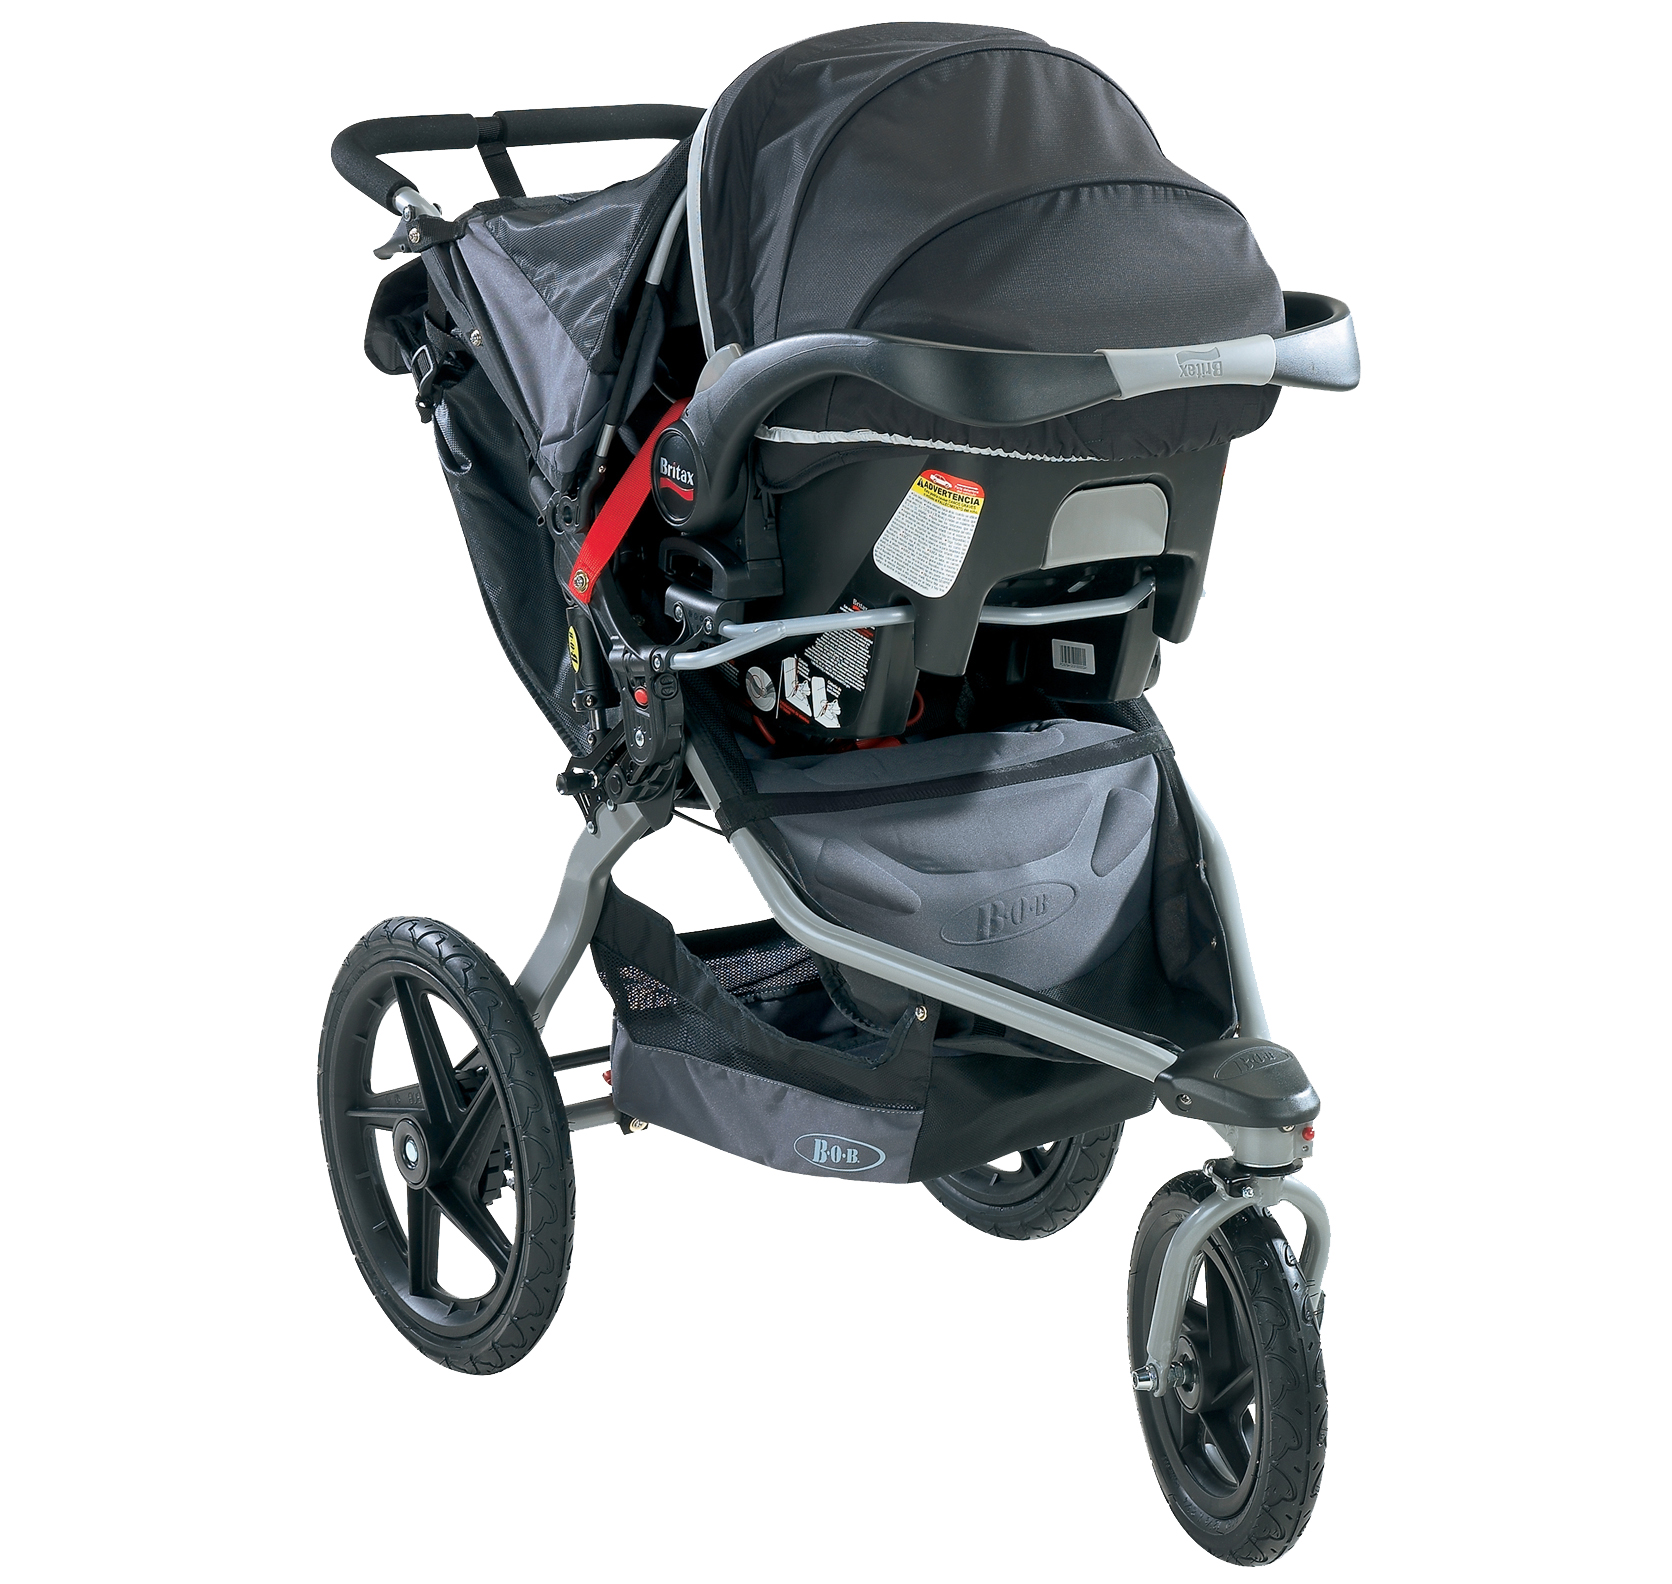 bob revolution travel system purchase a stroller car seat and get adapter for free 45. Black Bedroom Furniture Sets. Home Design Ideas